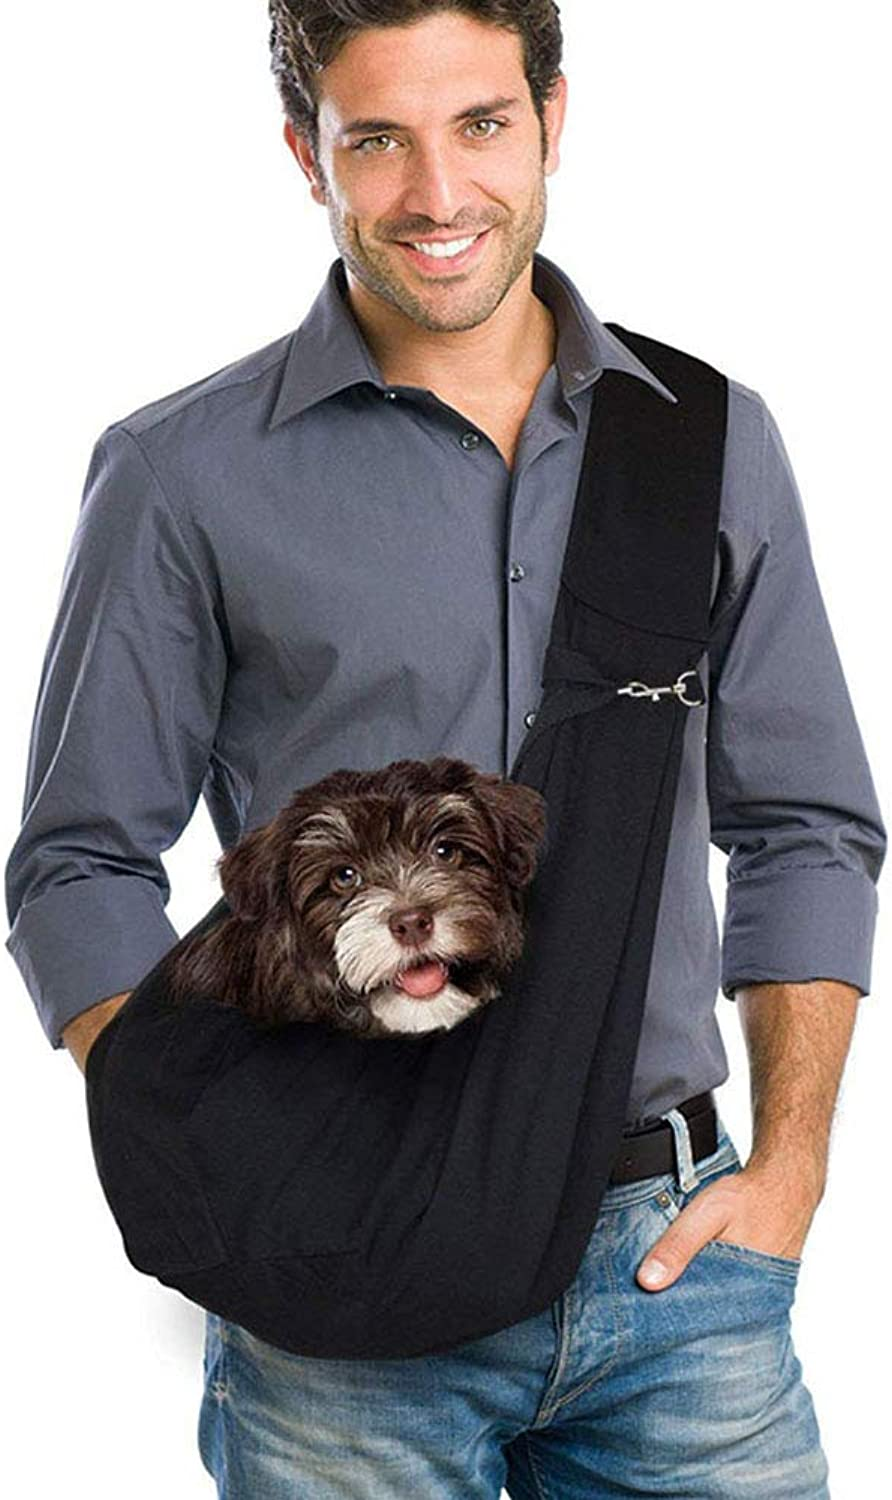 Pet Shoulder Bag Small Dog and Cat Travel Carrier, Shoulder Bag with Sling for Puppies Less Than 5 kgs